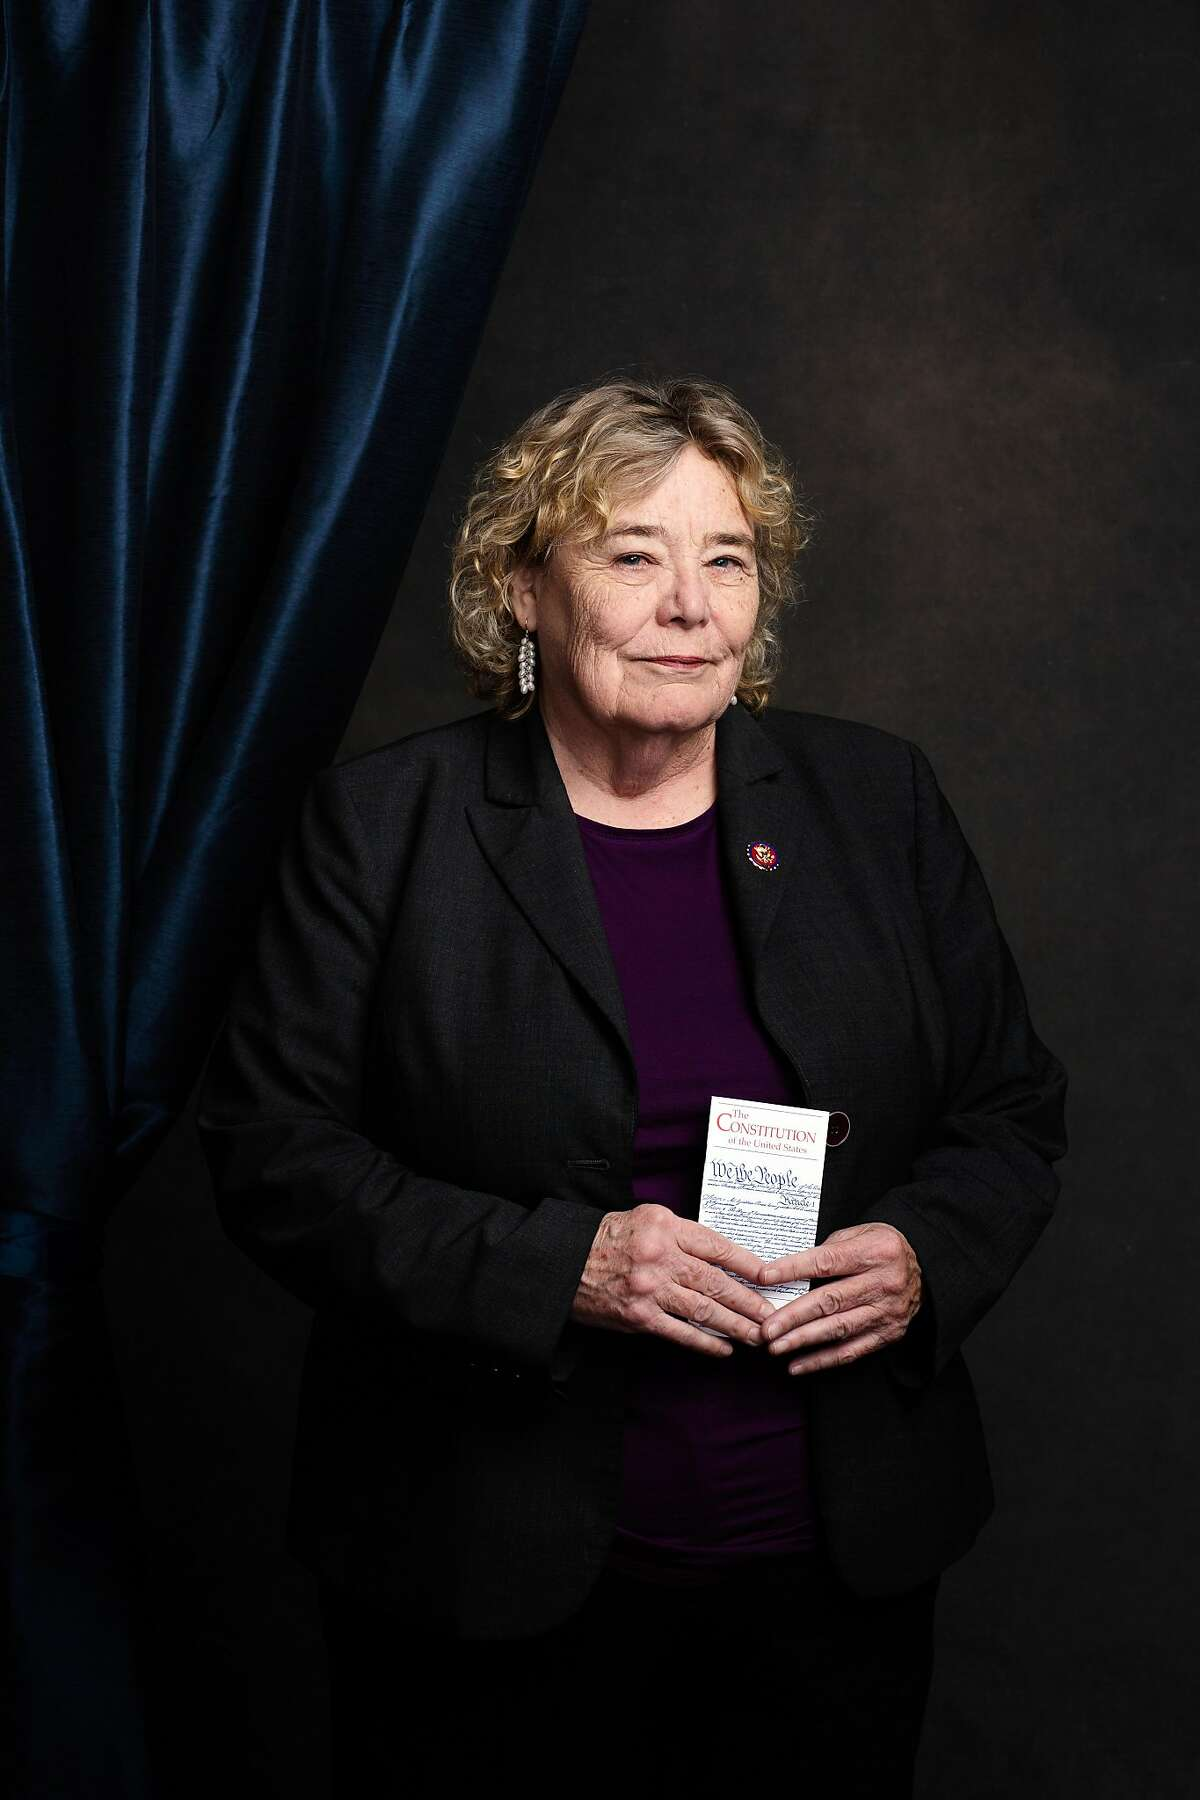 Rep. Zoe Lofgren (D-Calif.) poses for a portrait in Washington on Jan. 3, 2019. Just over 100 years ago, the first woman was sworn into Congress. Now a record 131 women are serving in the Legislature. (Elizabeth D. Herman/The New York Times)